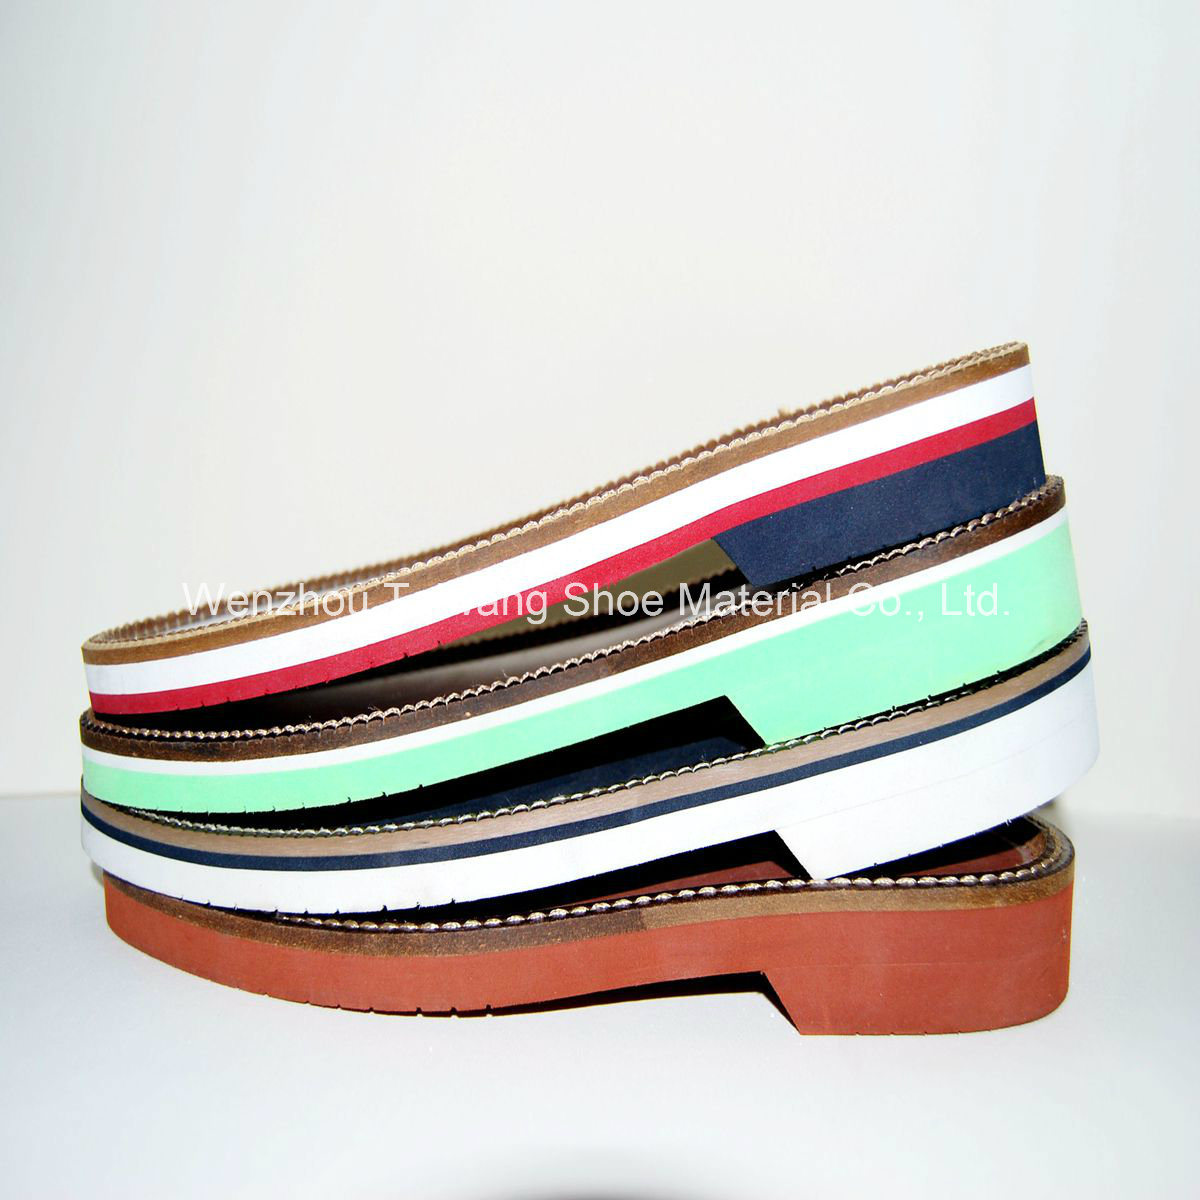 EVA Rubber Material Combination Soles for Making Shoes